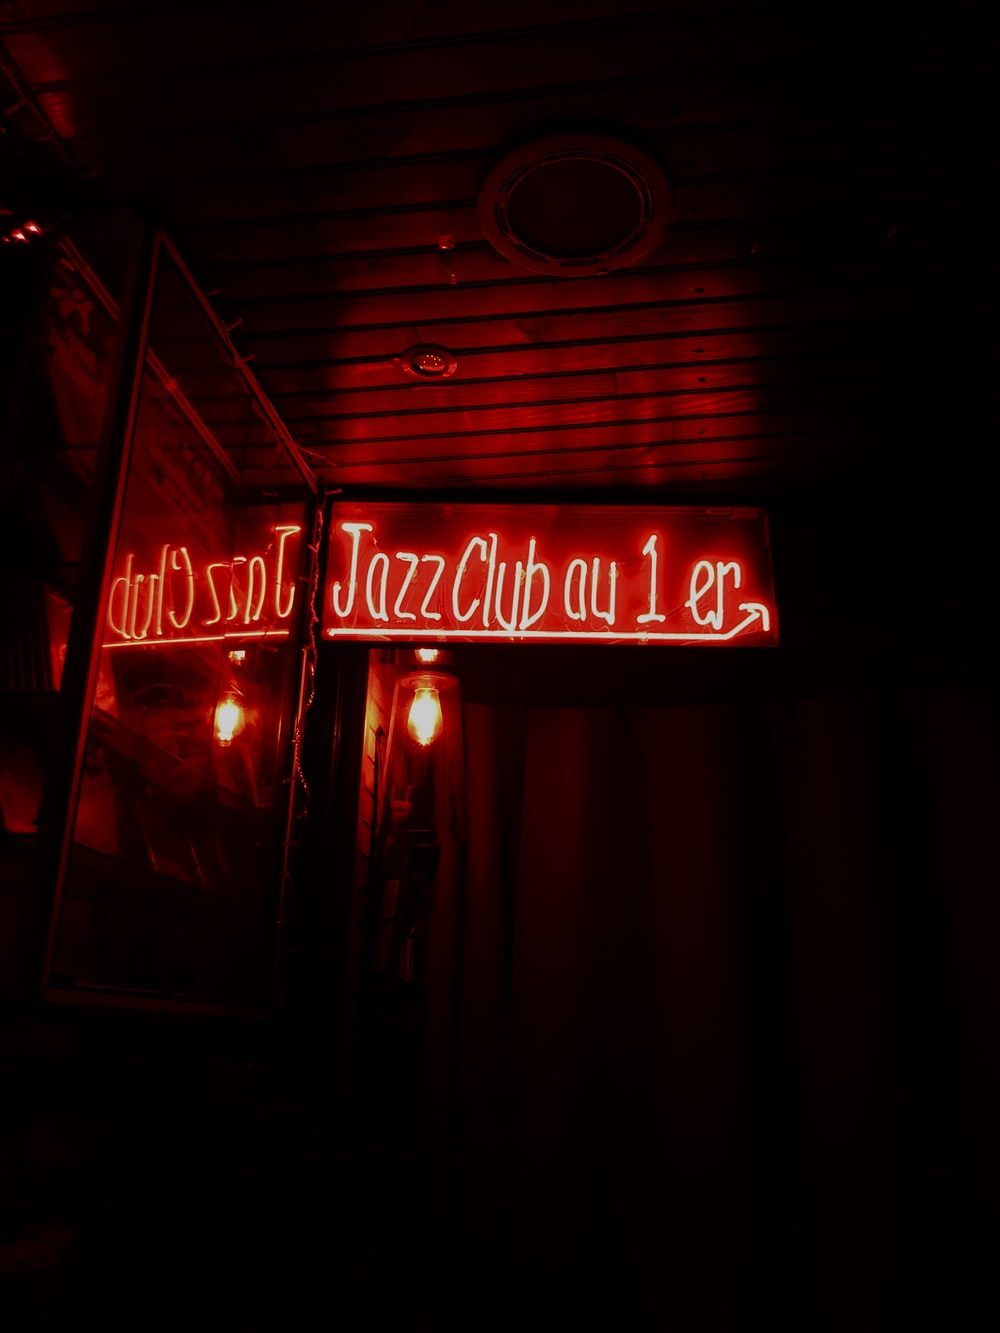 Jazz Club neon signage turned on